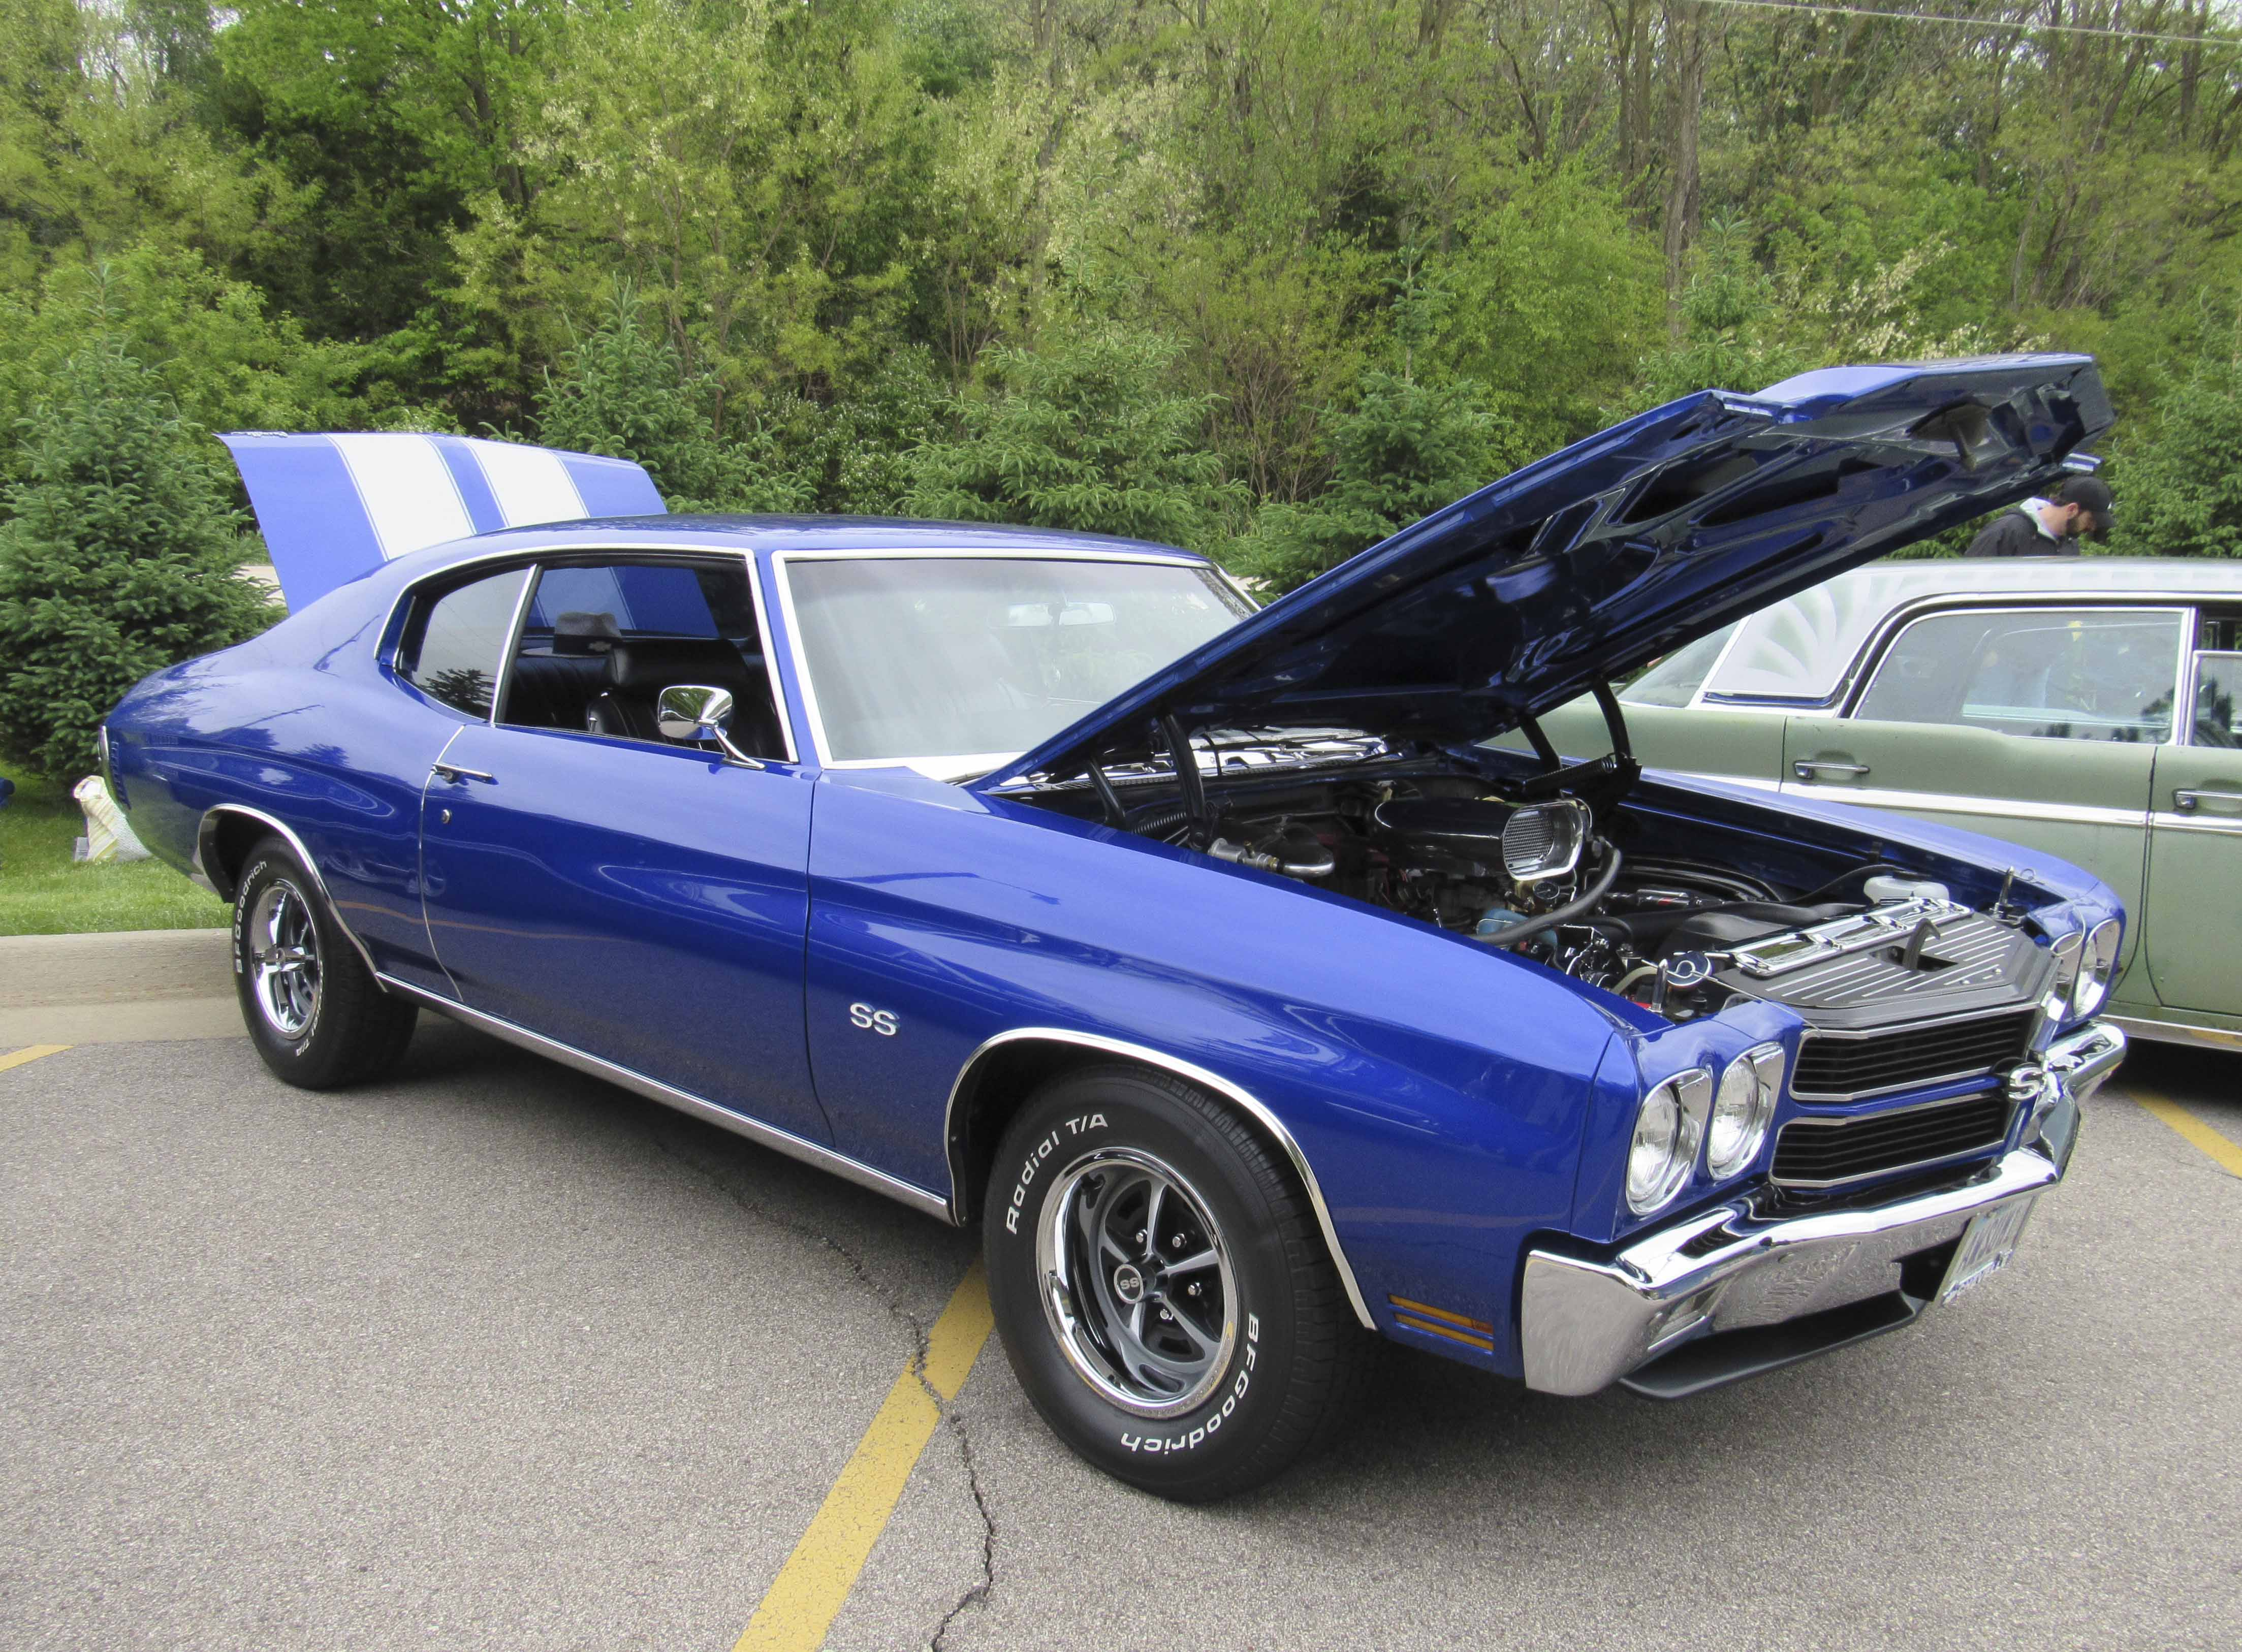 Pat and Rhonda Coleman of Peosta are the owners of this 1970 Chevelle.